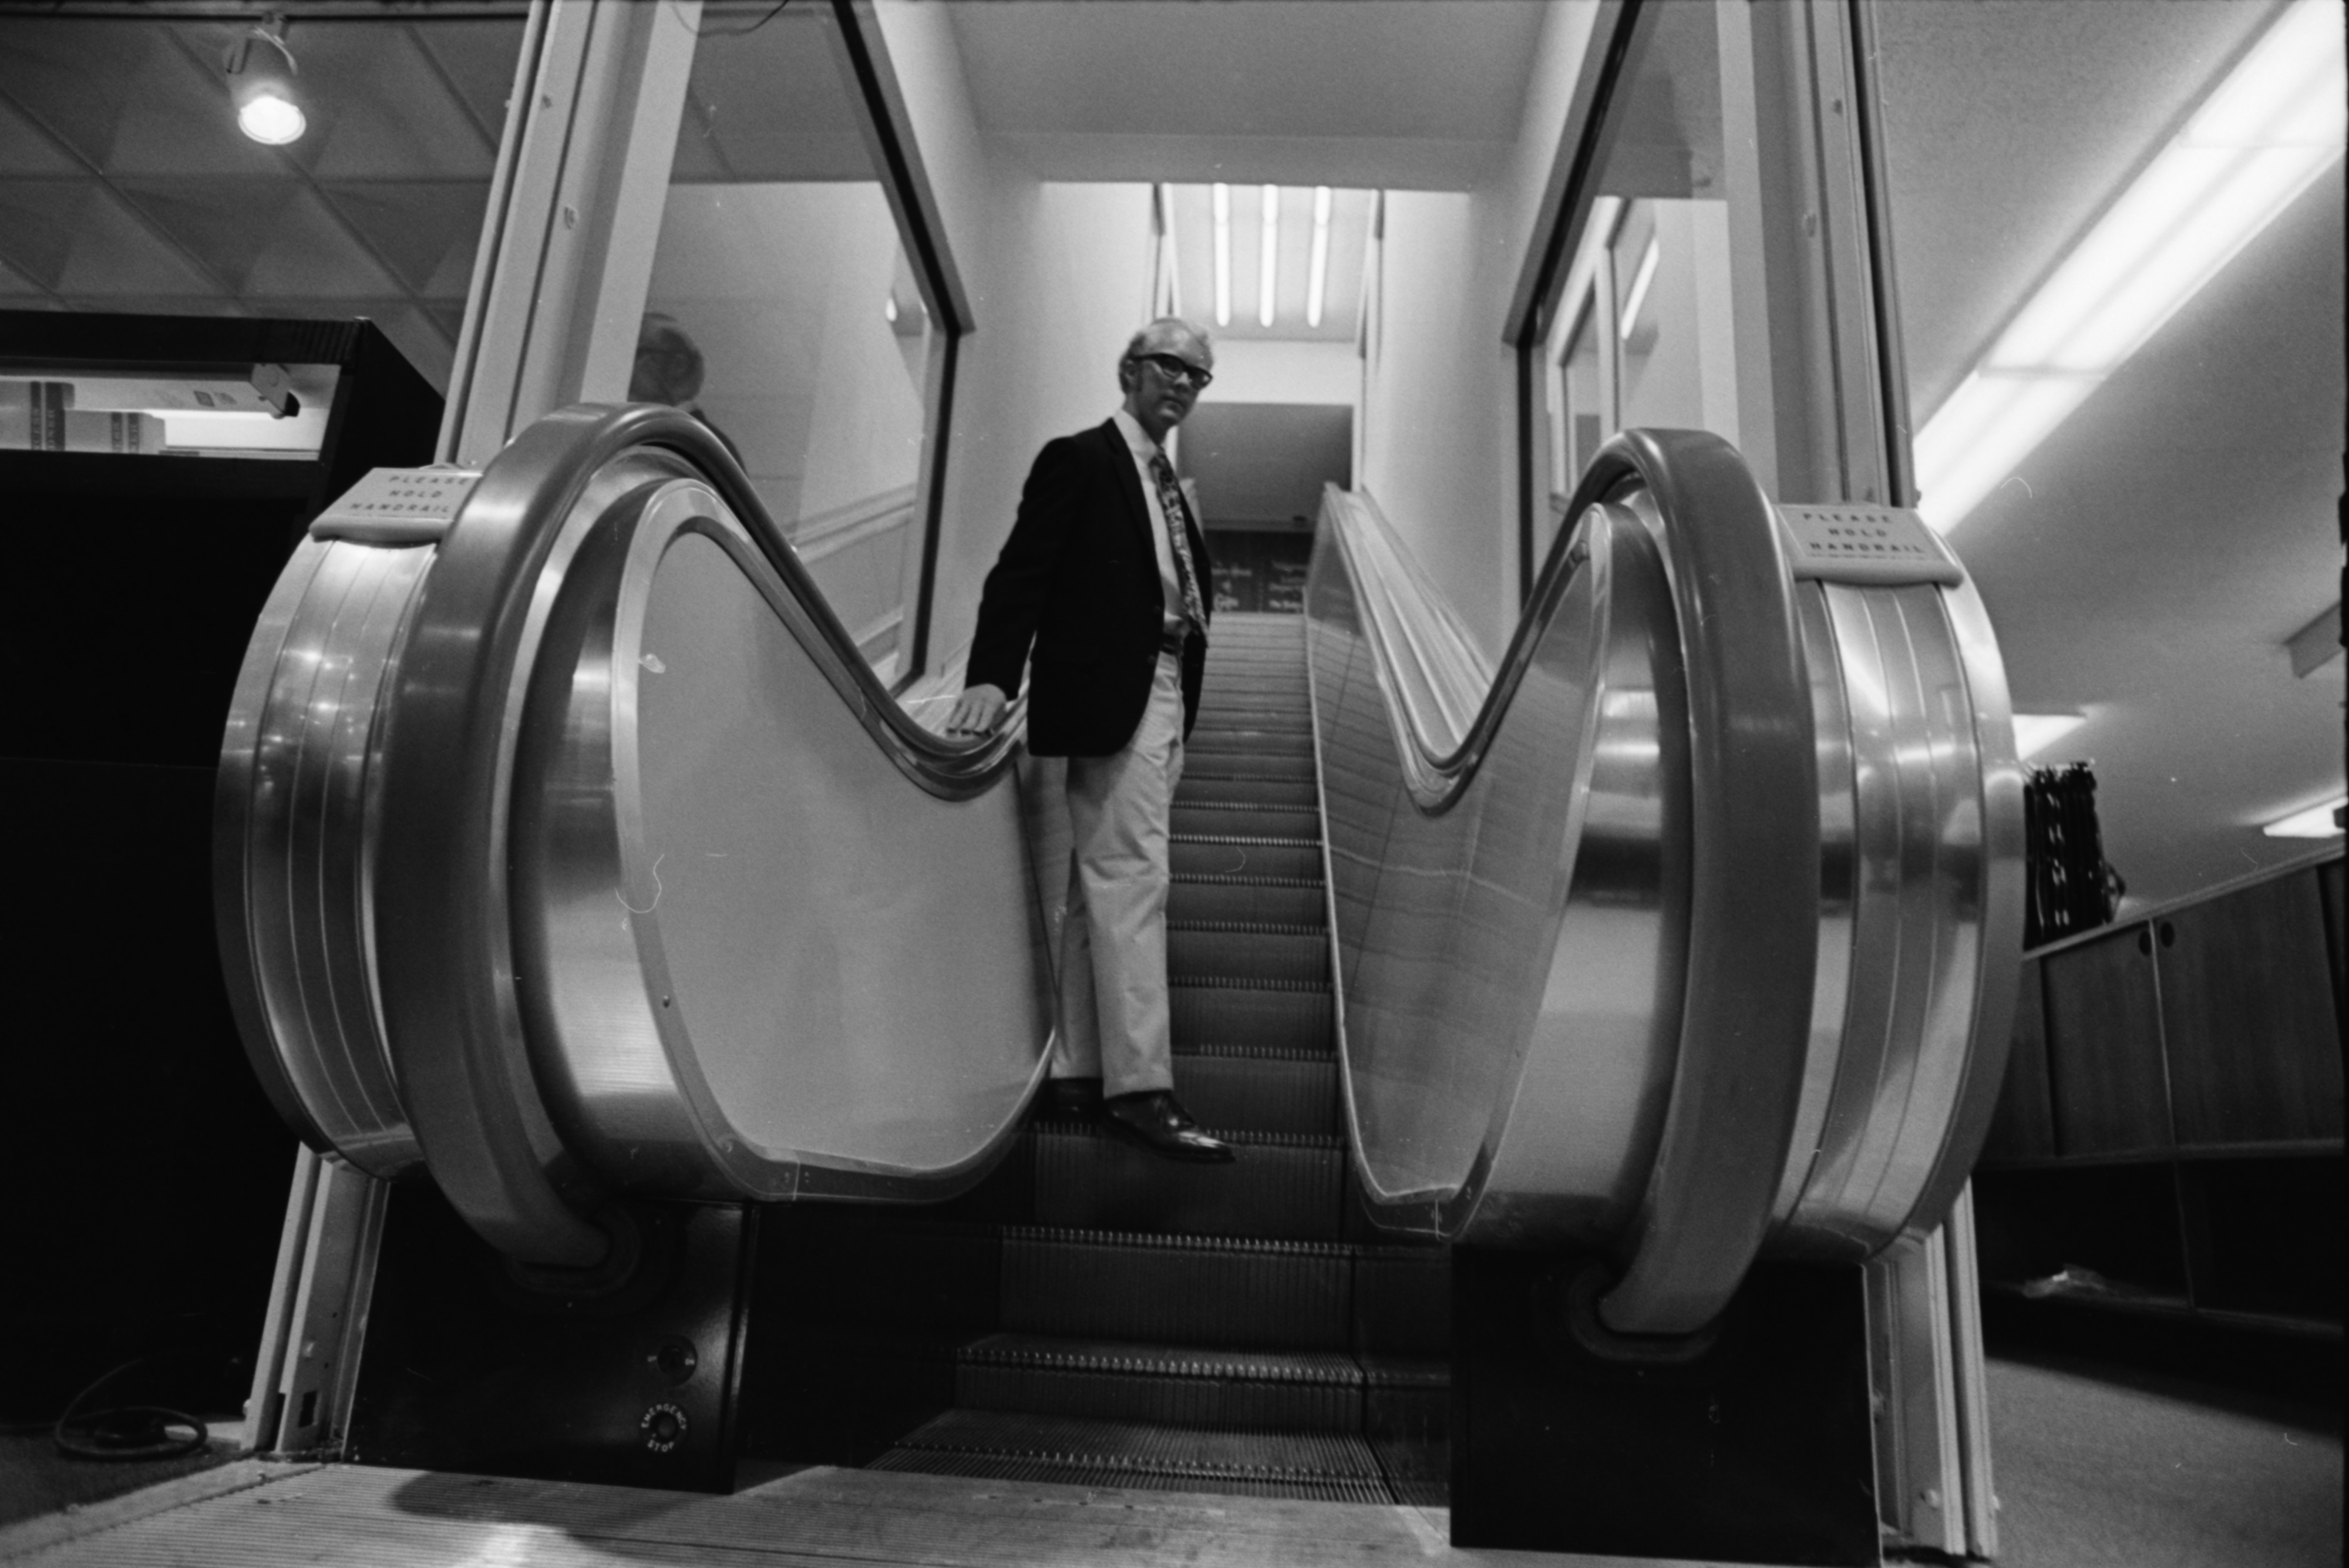 Ann Arbor's First Escalator, July 1969 image